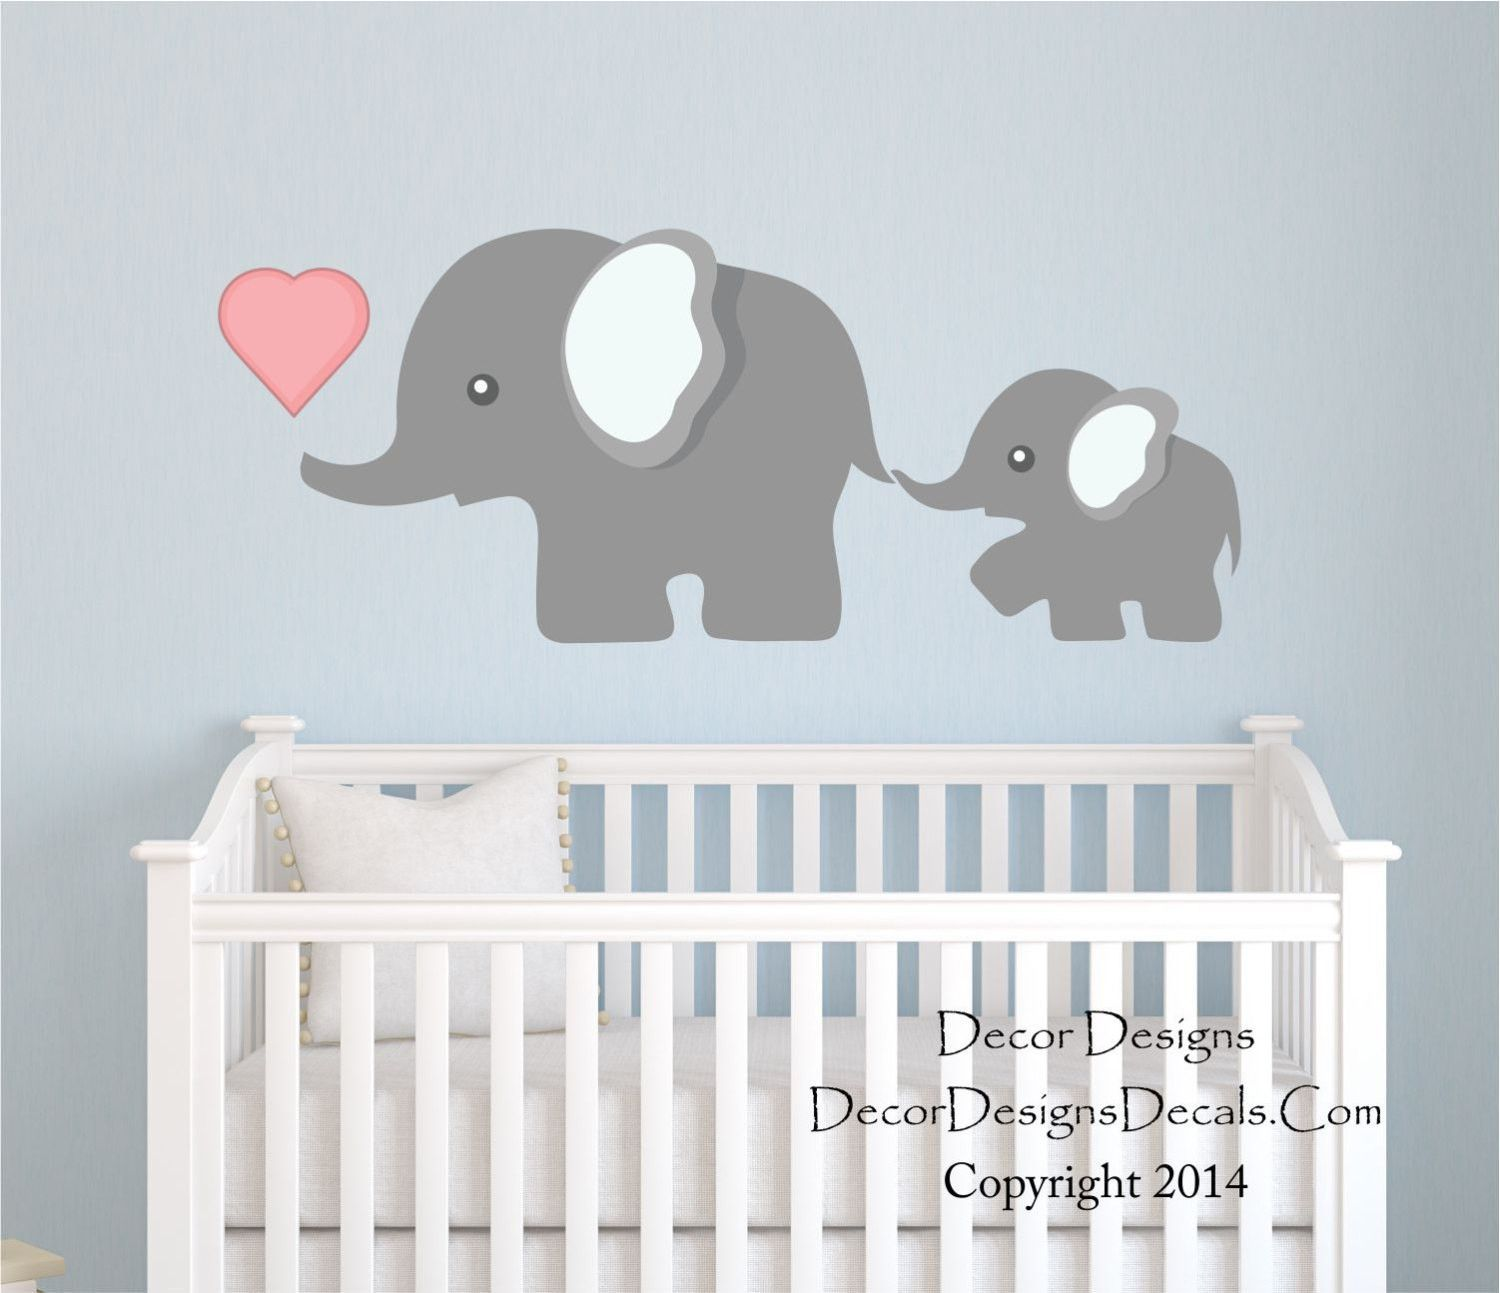 Elephant Wall Decal, By Decor Designs Decals, Nursery Wall Decal, Mom And  Baby Elephant Decal, Elephants Decal Sticker, Animal Decal, Nursery Decals   Kids ...